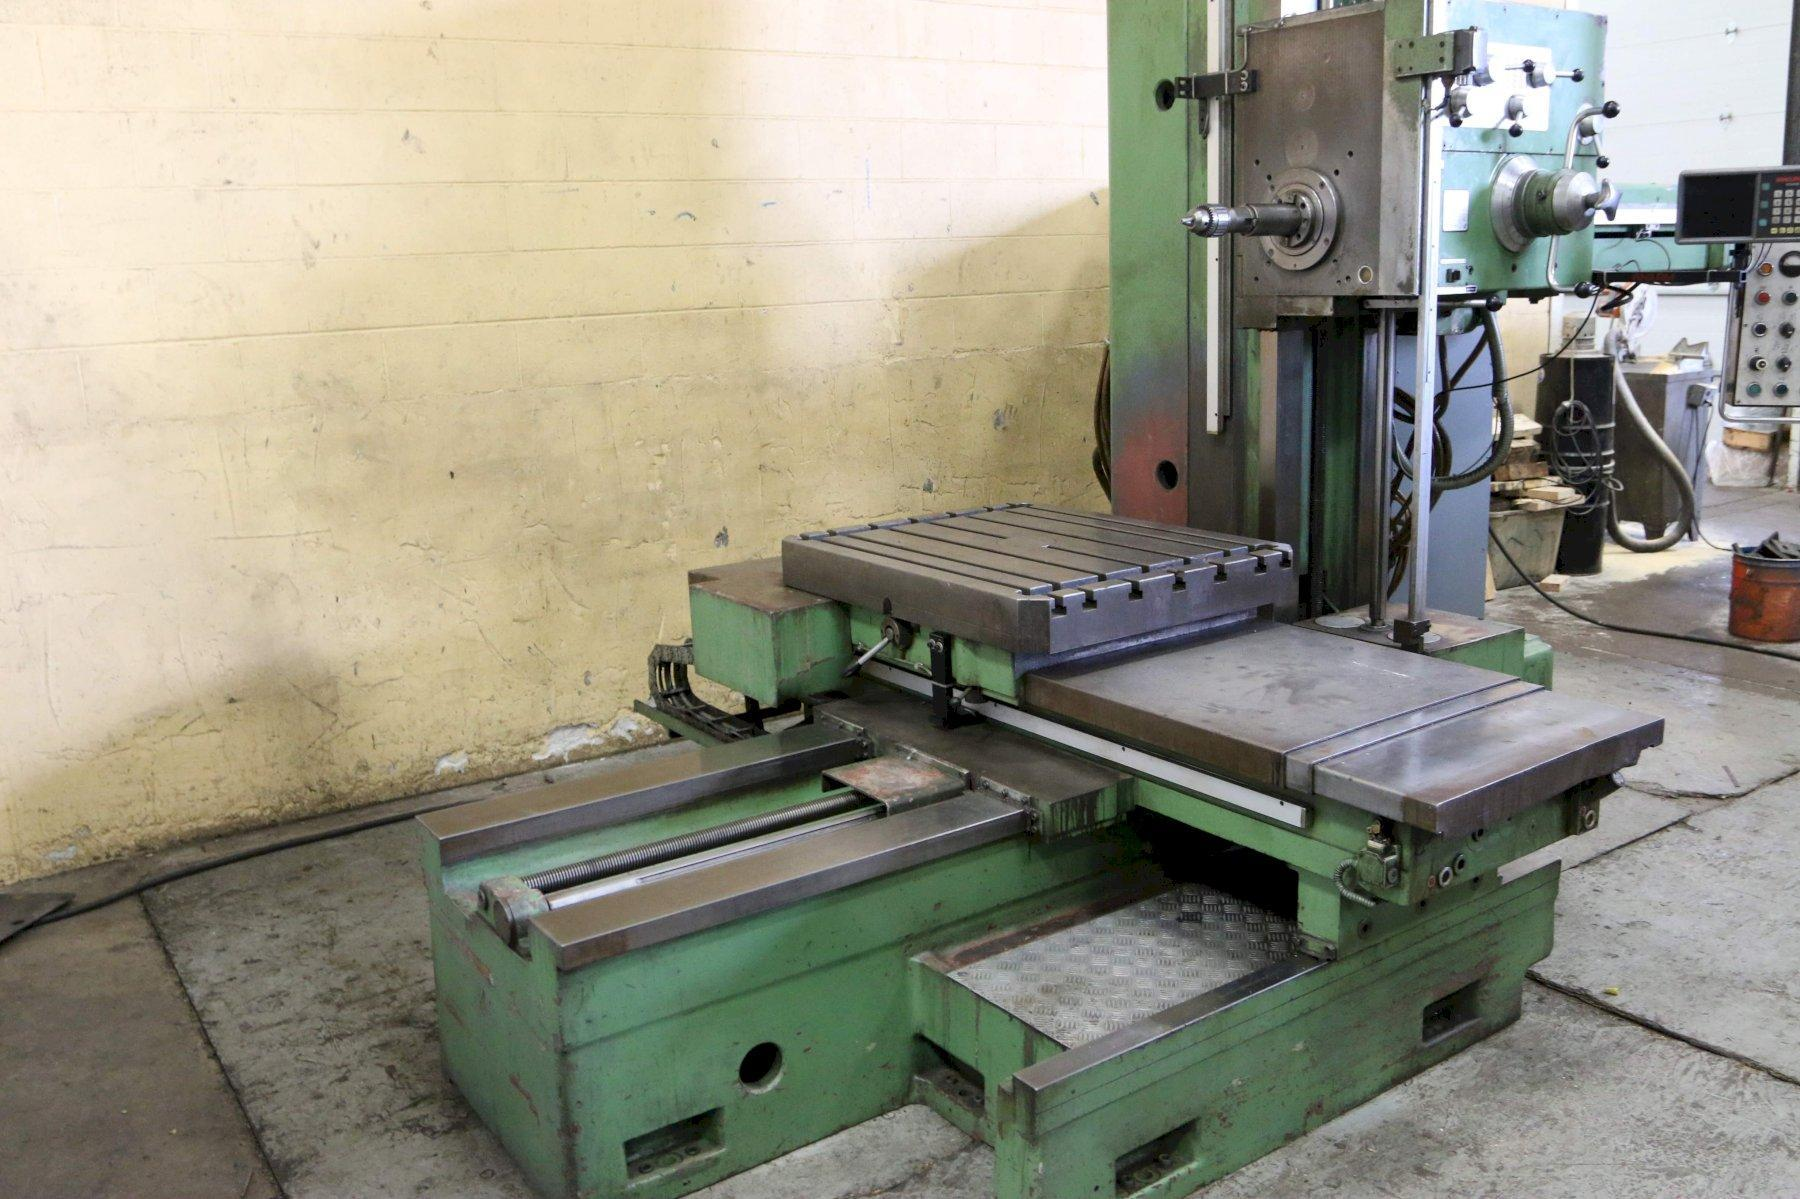 3' WOTAN MODEL #B75-M ROTARY TABLE BORING MILL: STOCK 71517